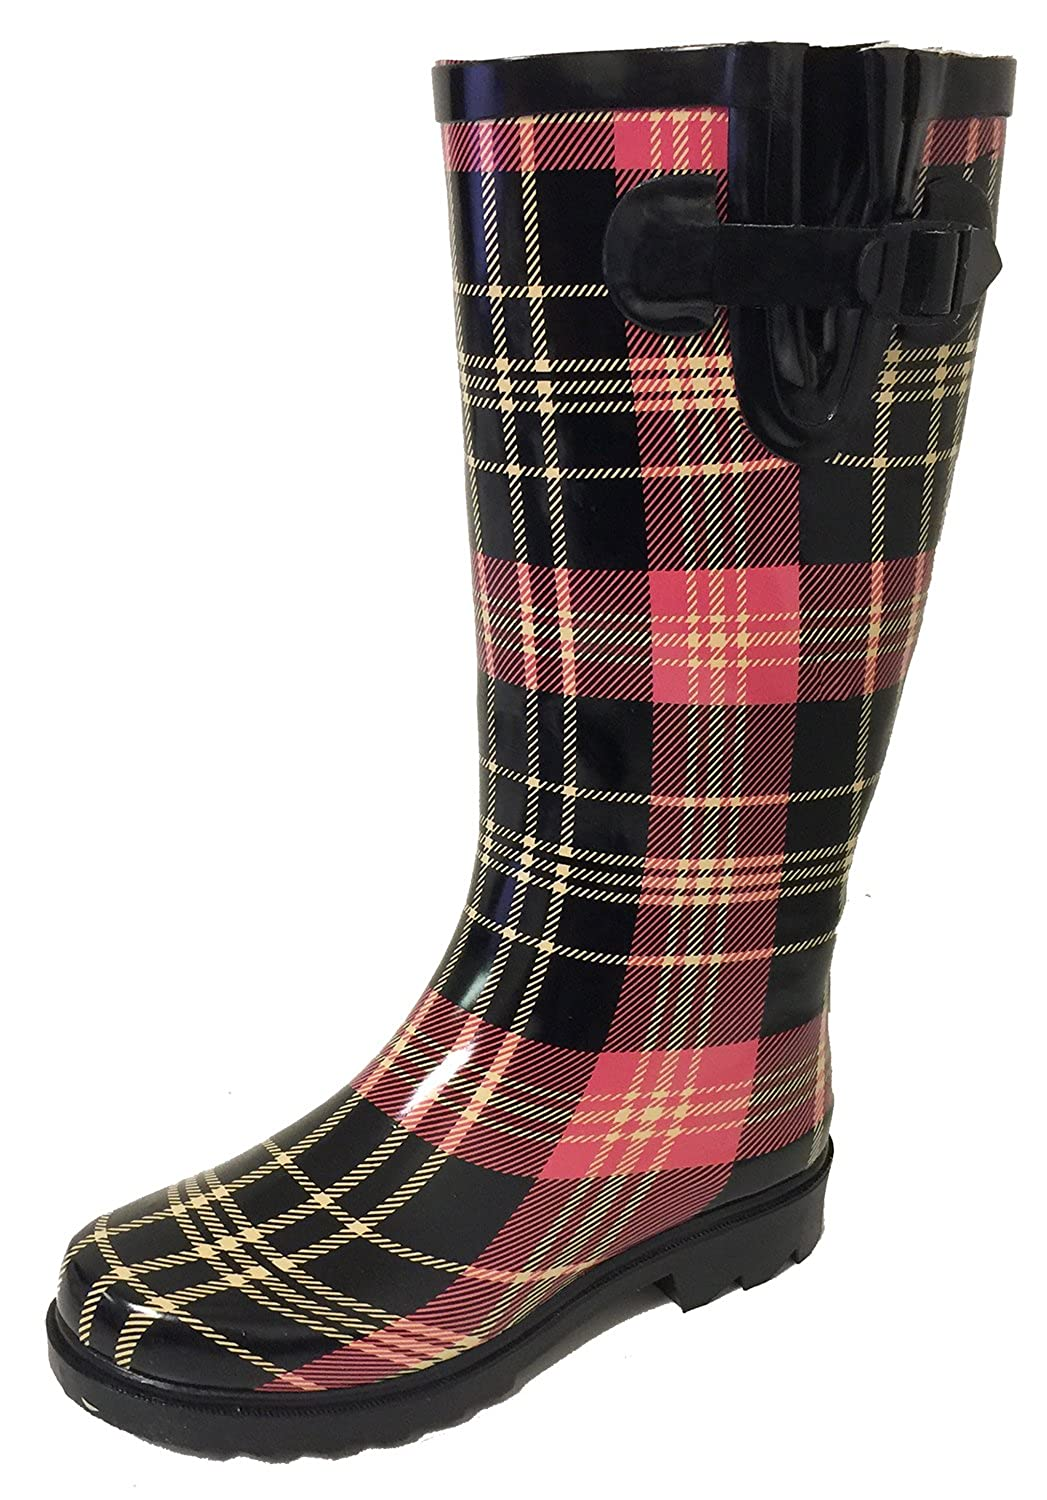 Black Red Plaid G4U Women's Rain Boots Multiple Styles color Mid Calf Wellies Buckle Fashion Rubber Knee High Snow shoes